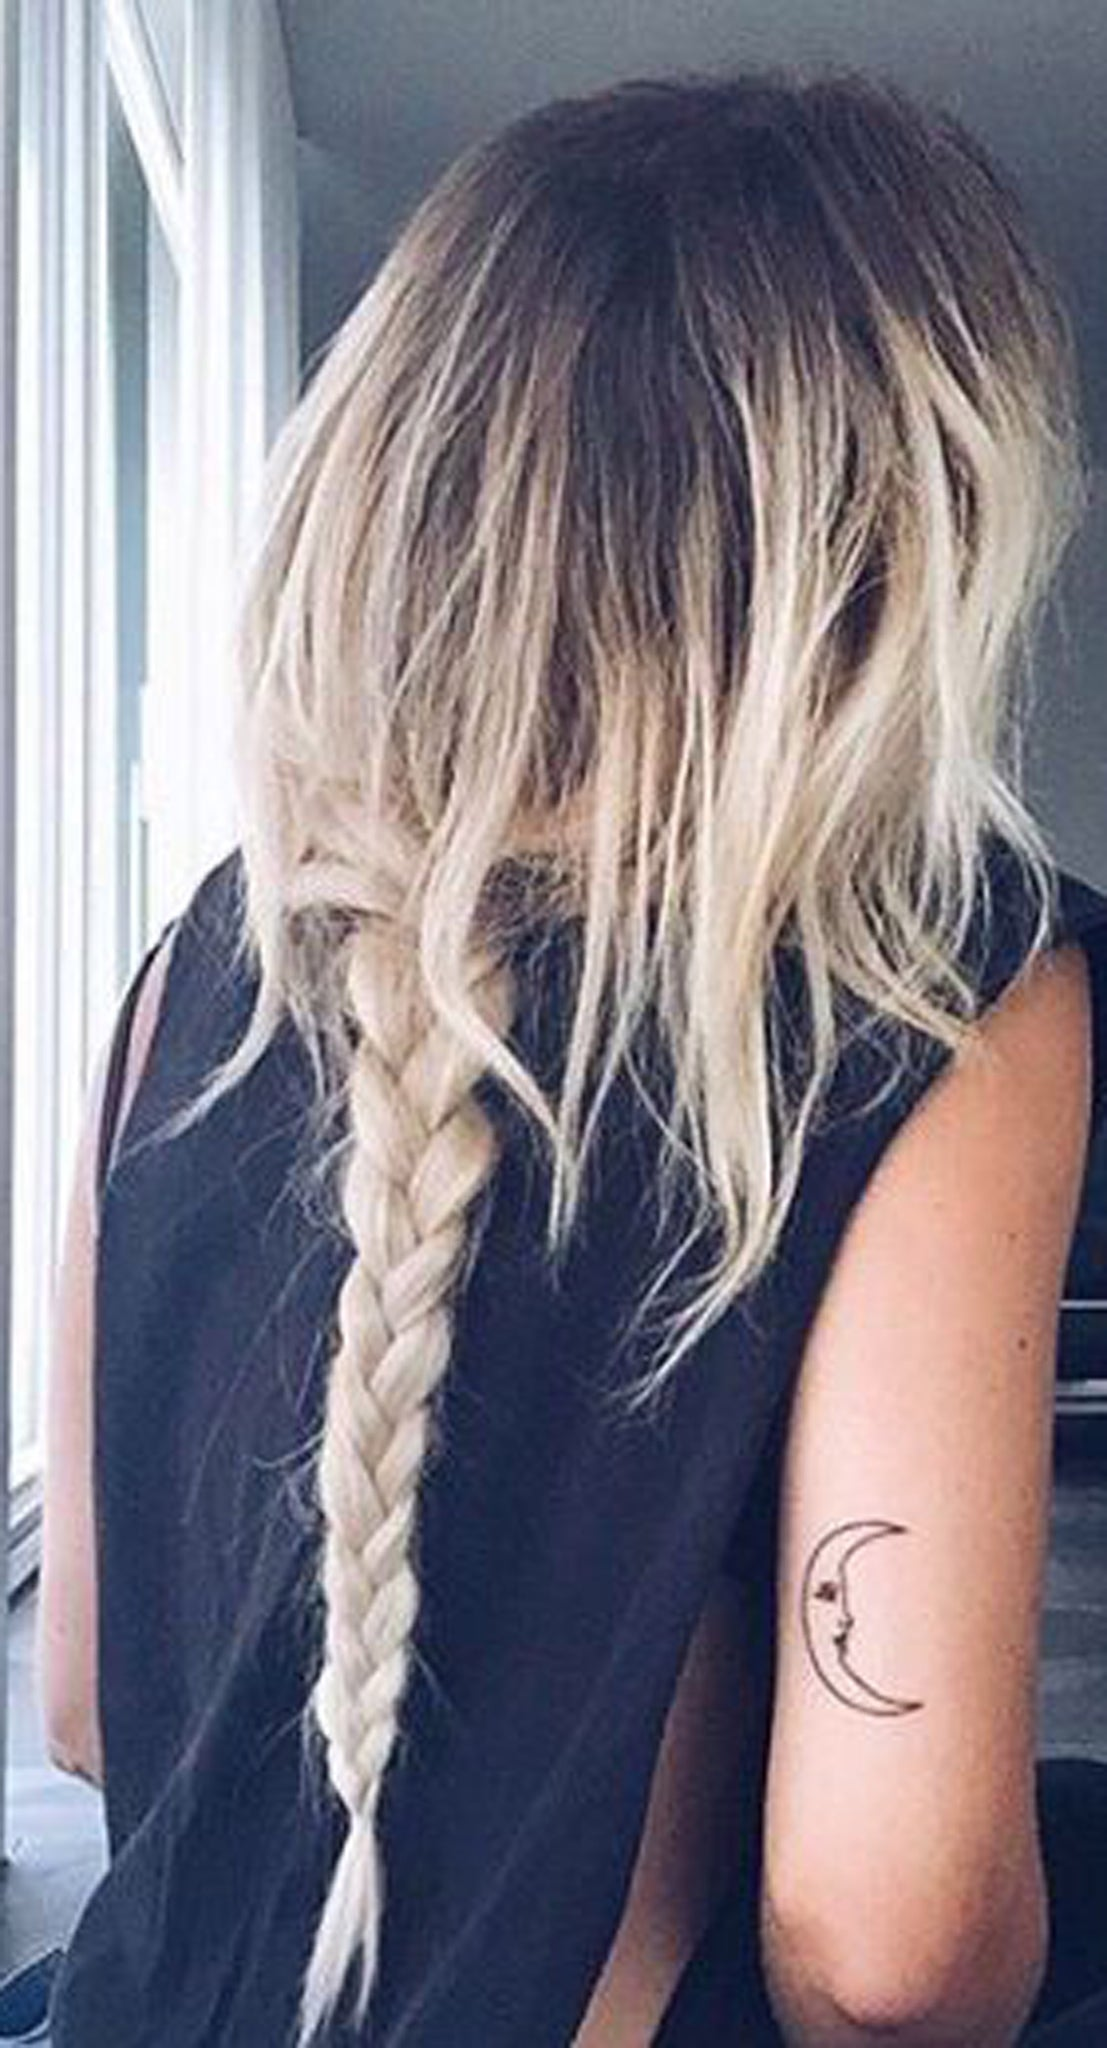 Moon Tricep Tattoo Ideas For Teen Girls Minimal Simple